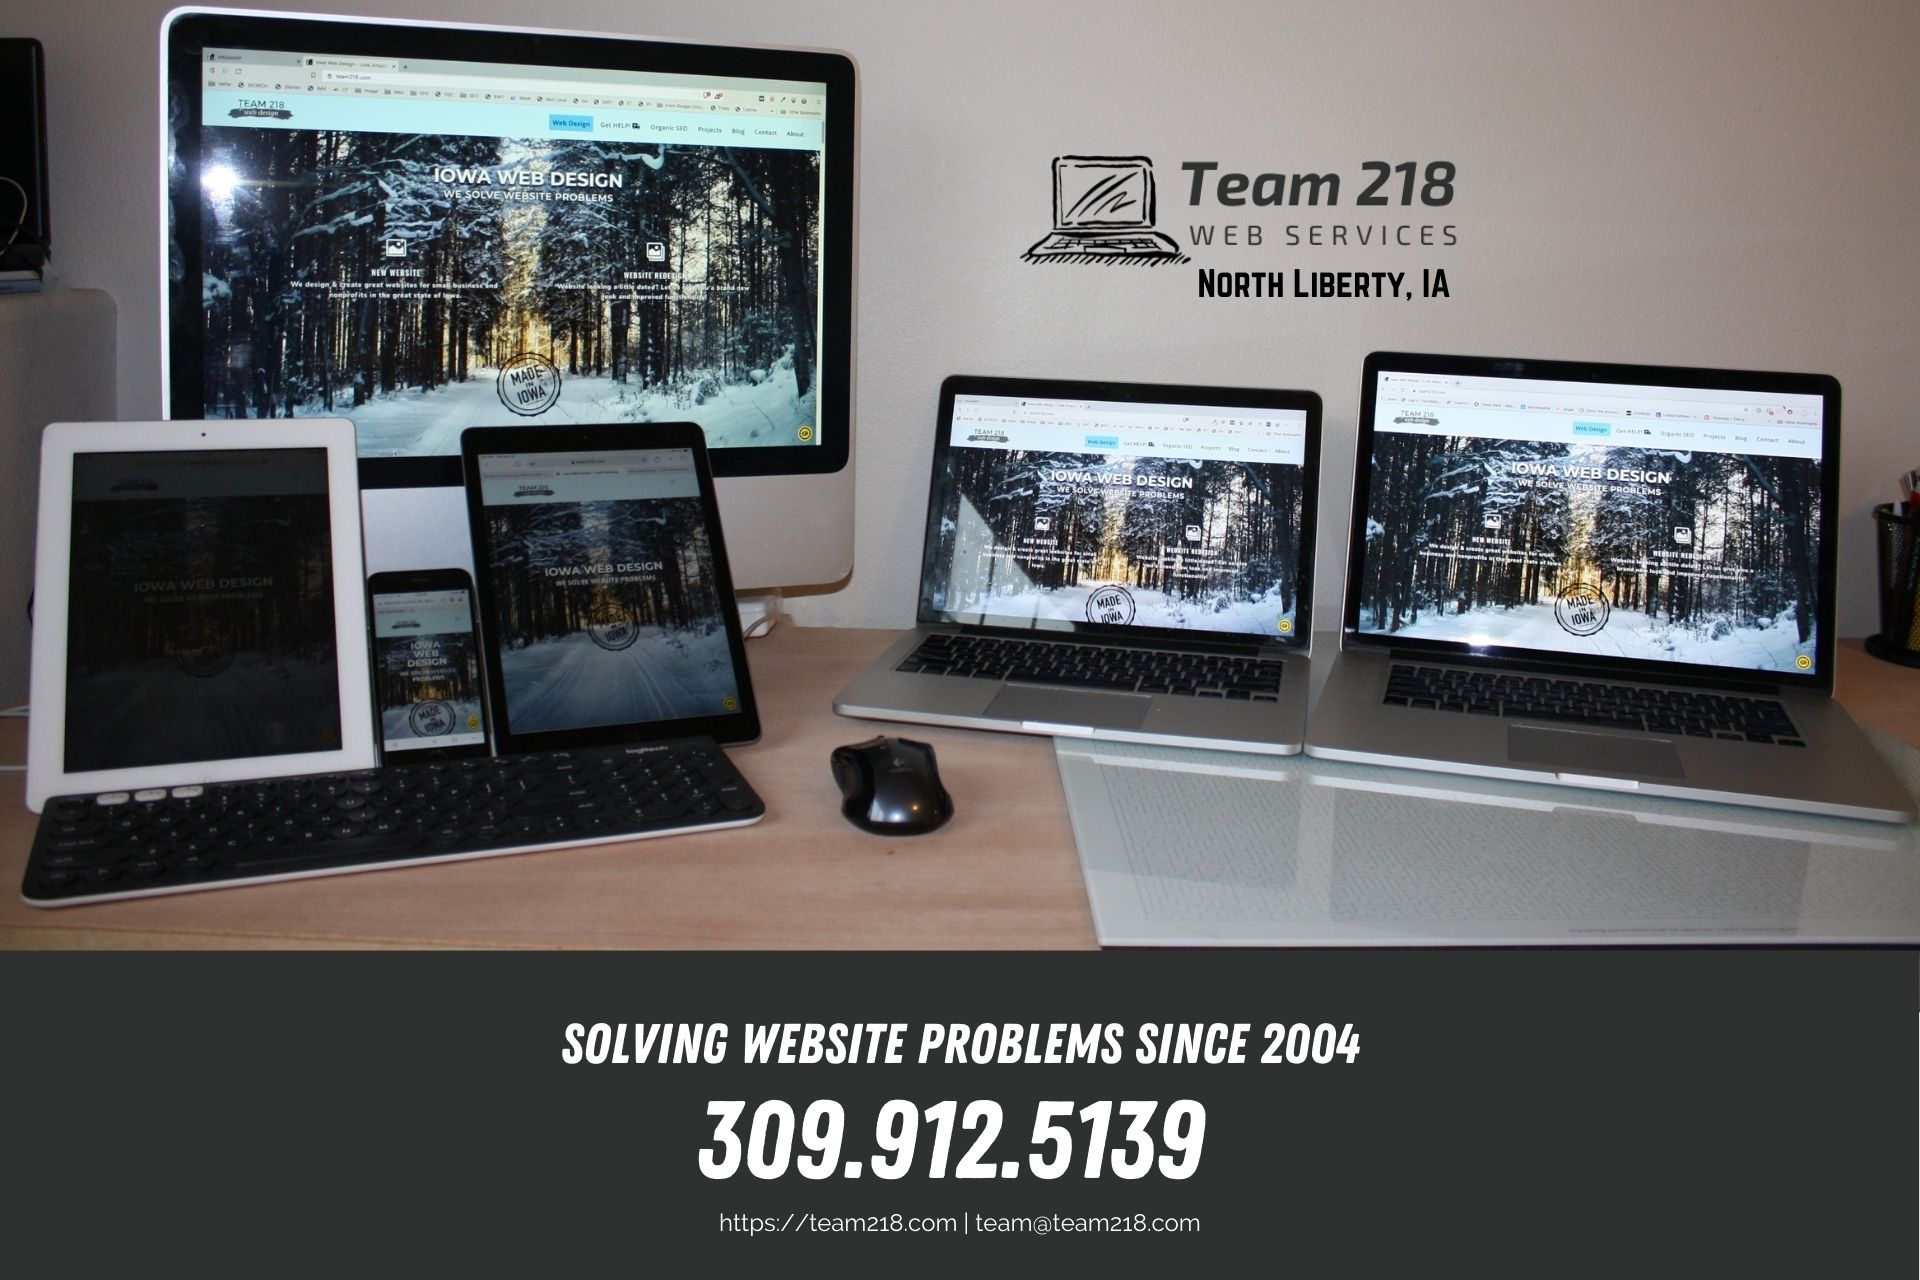 Help with your website - free 30 minute Zoom consultation